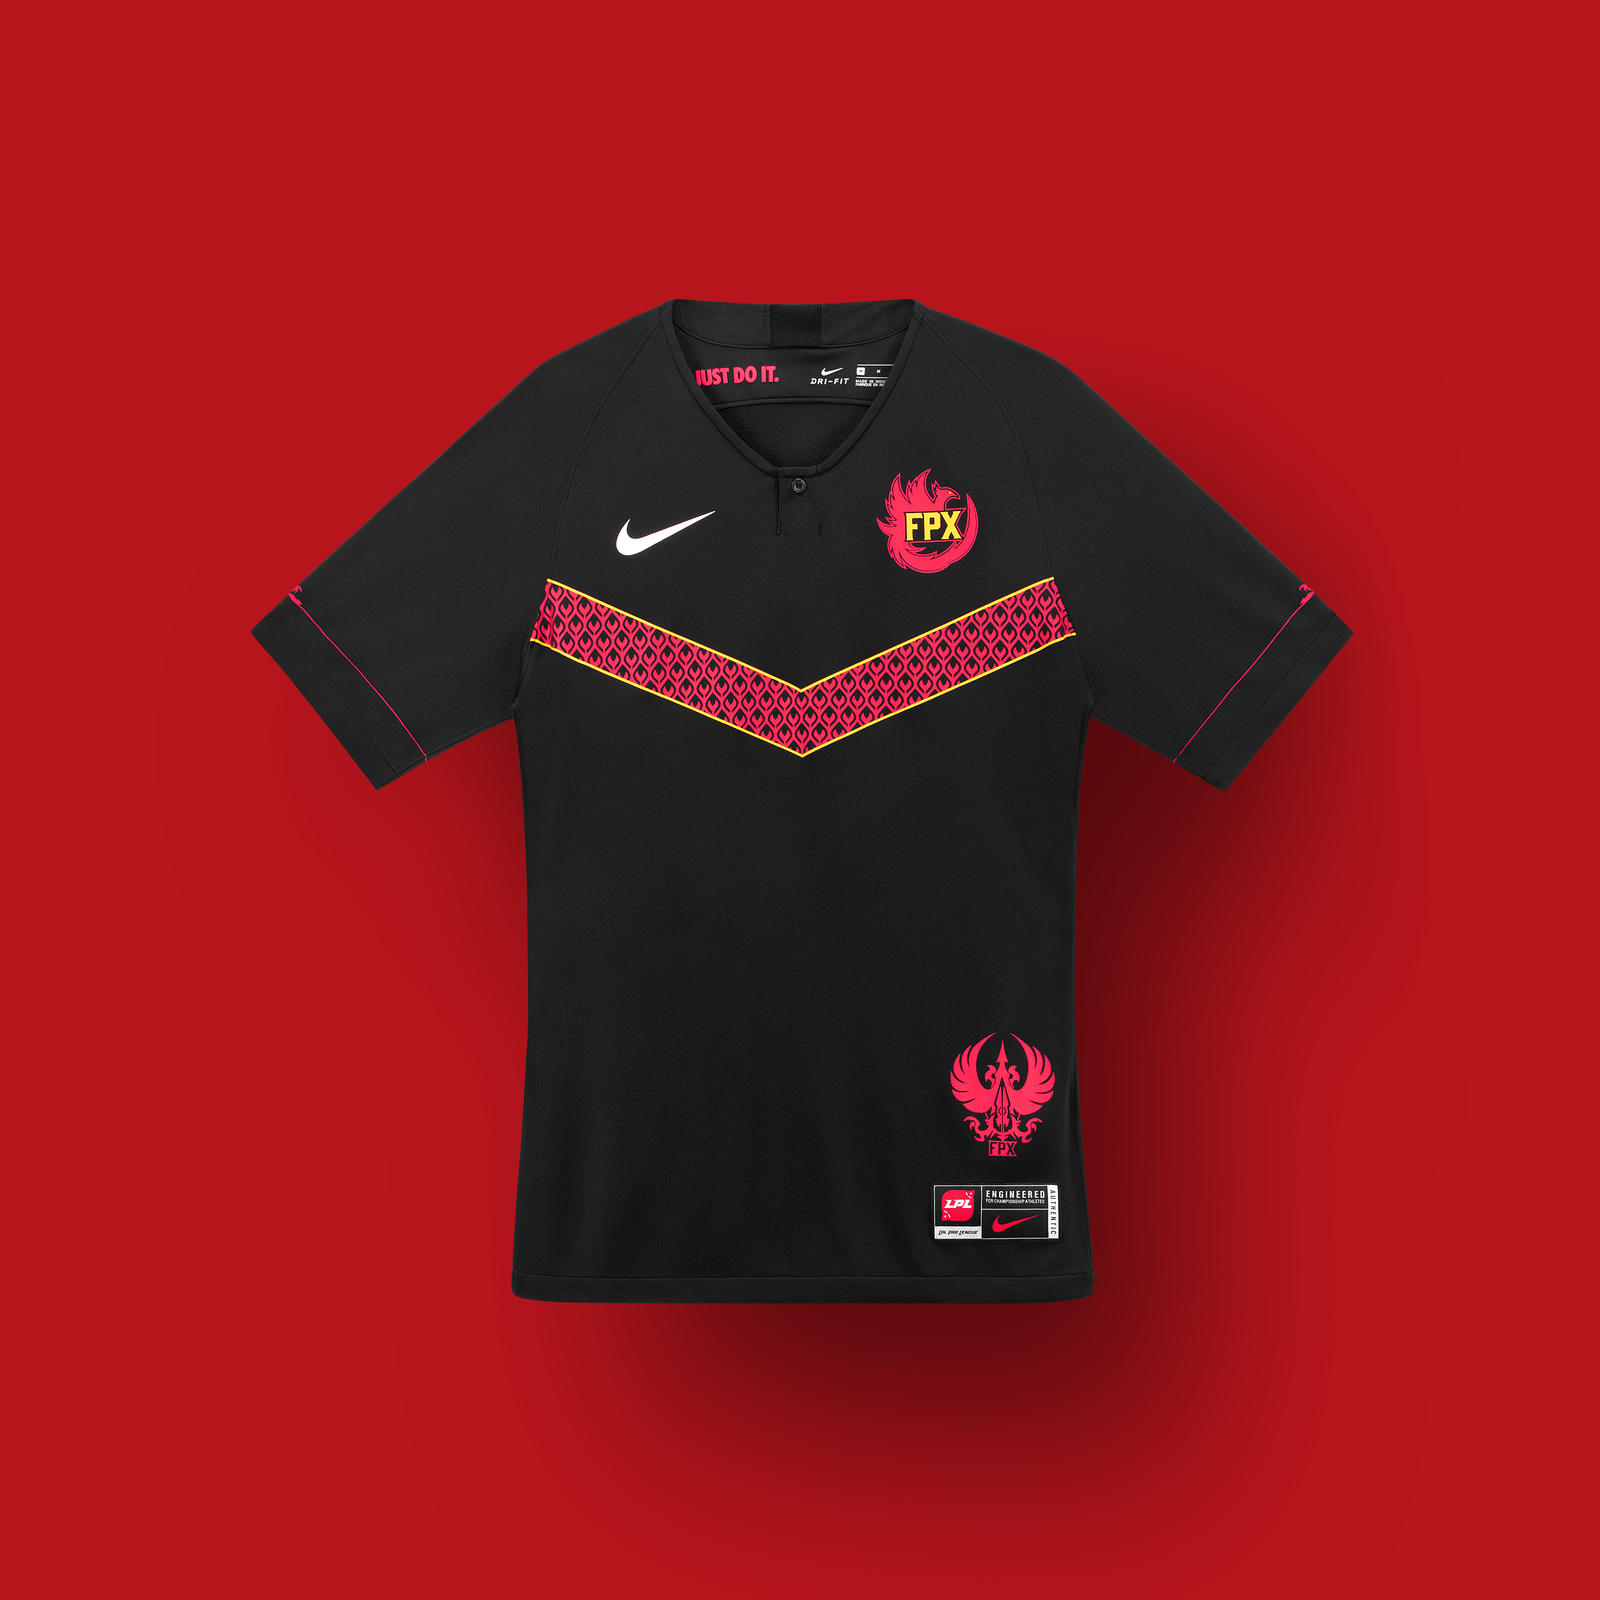 Nike League of Legends Pro League Team Kits 2019-20 Official Images 40